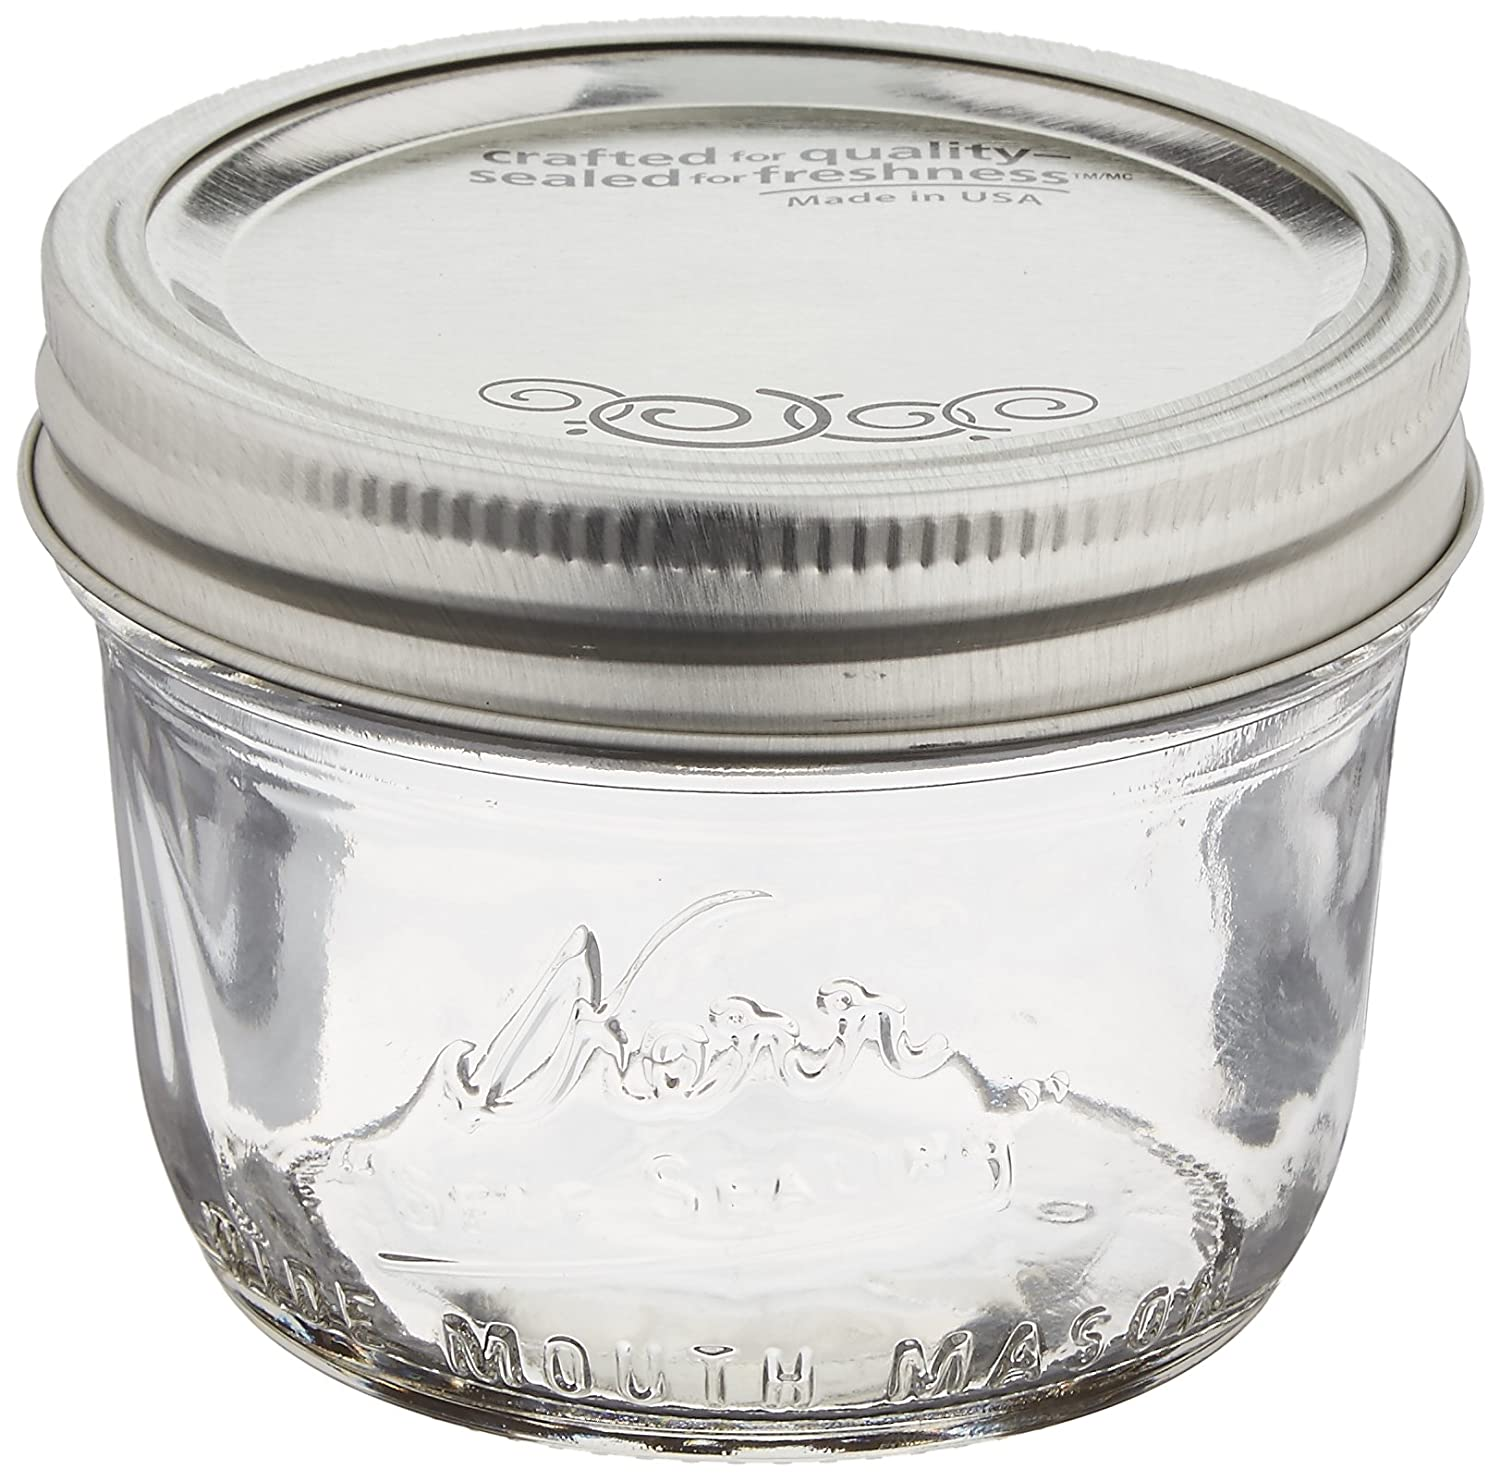 Jarden Home Brands 12Pk 1/2Pt wide Mouth Jar Canning Jars